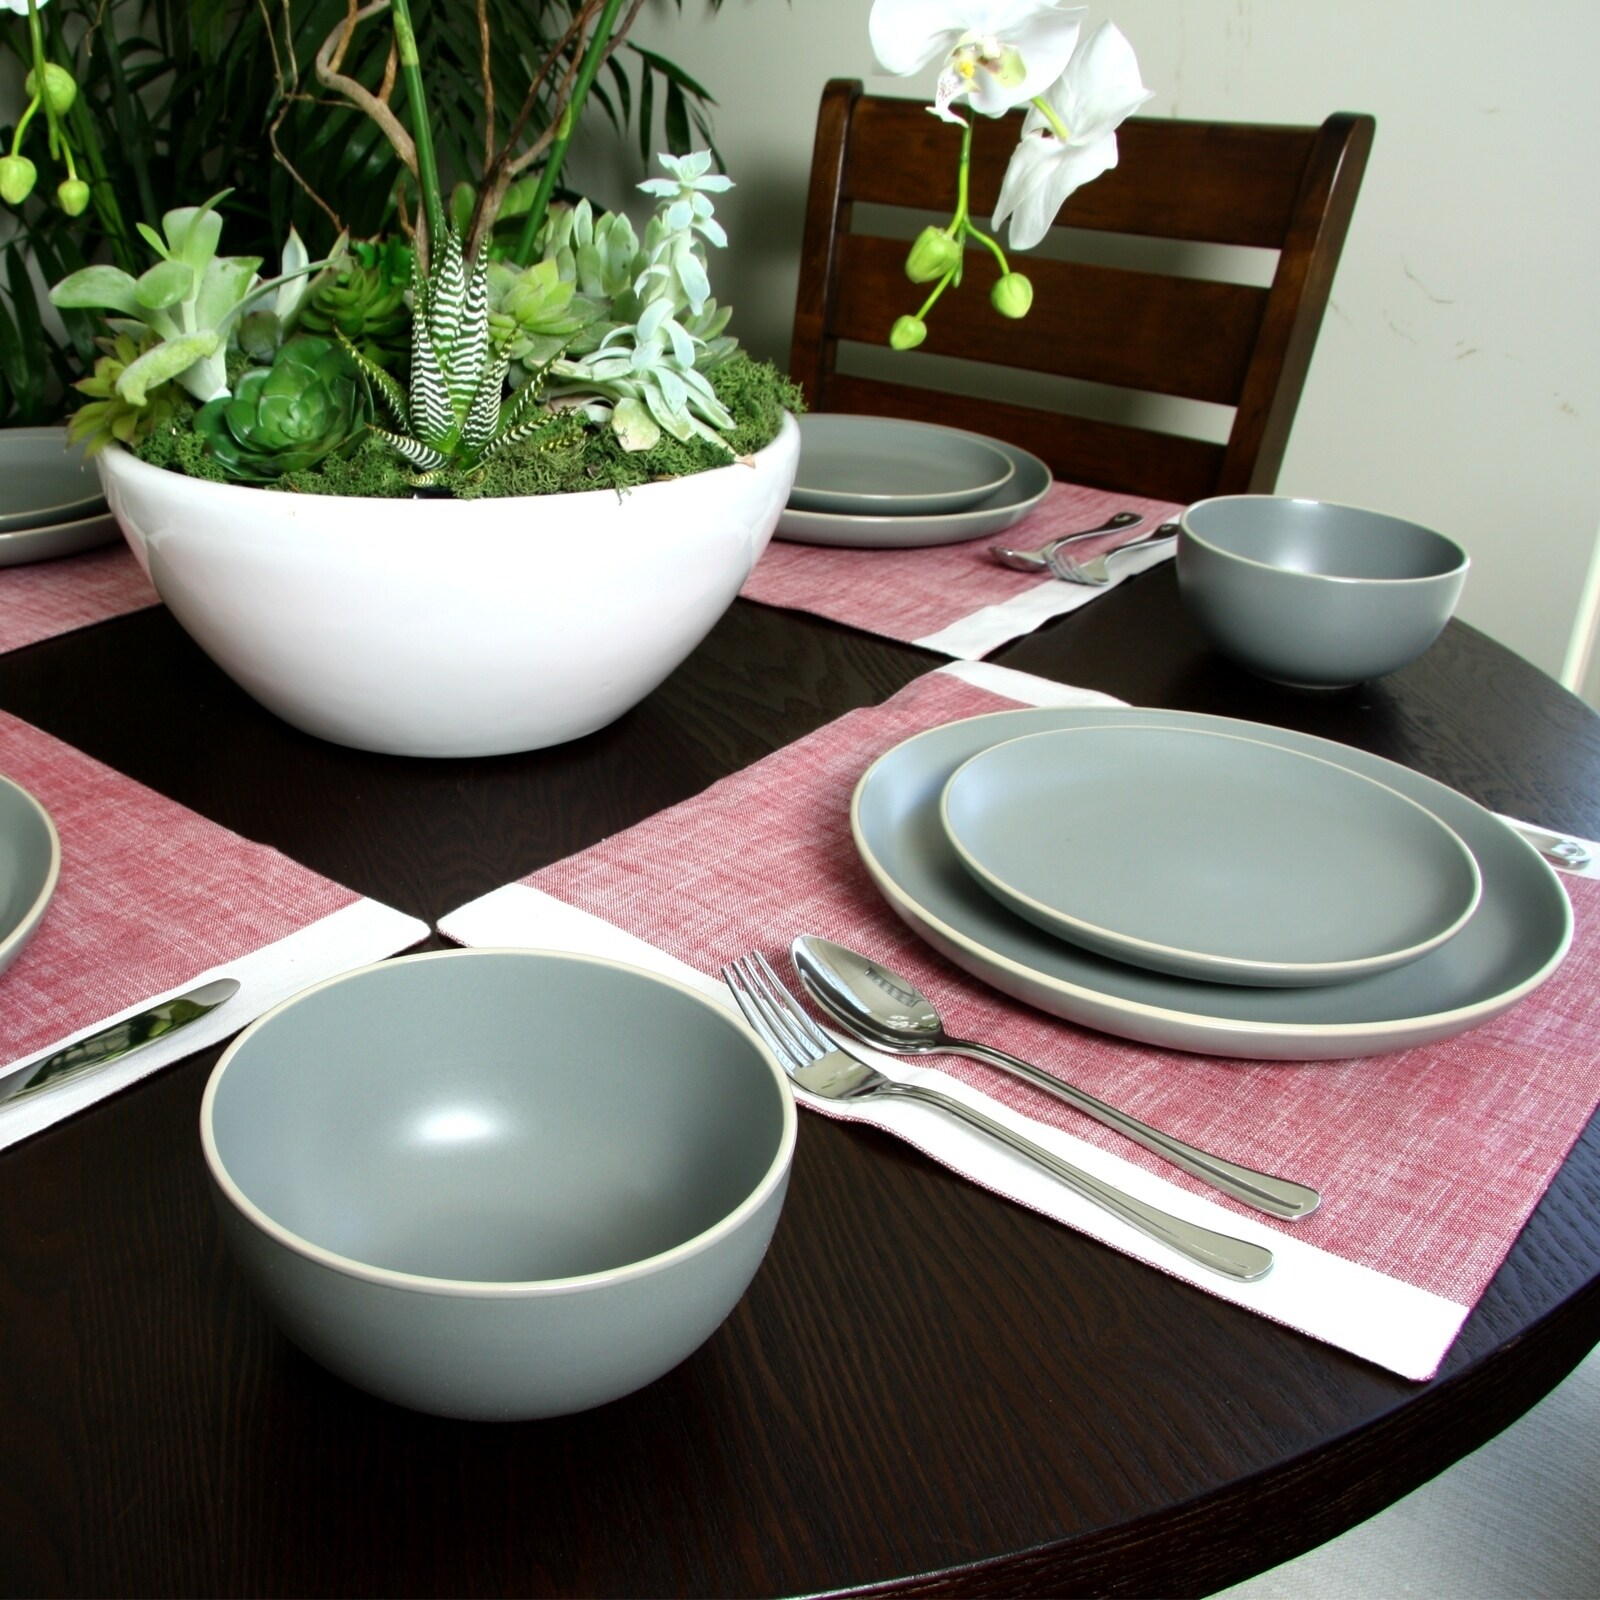 Gibson Home Rockaway 12-Piece Dinnerware Set in Grey - Free Shipping Today - Overstock - 24263885 & Gibson Home Rockaway 12-Piece Dinnerware Set in Grey - Free Shipping ...